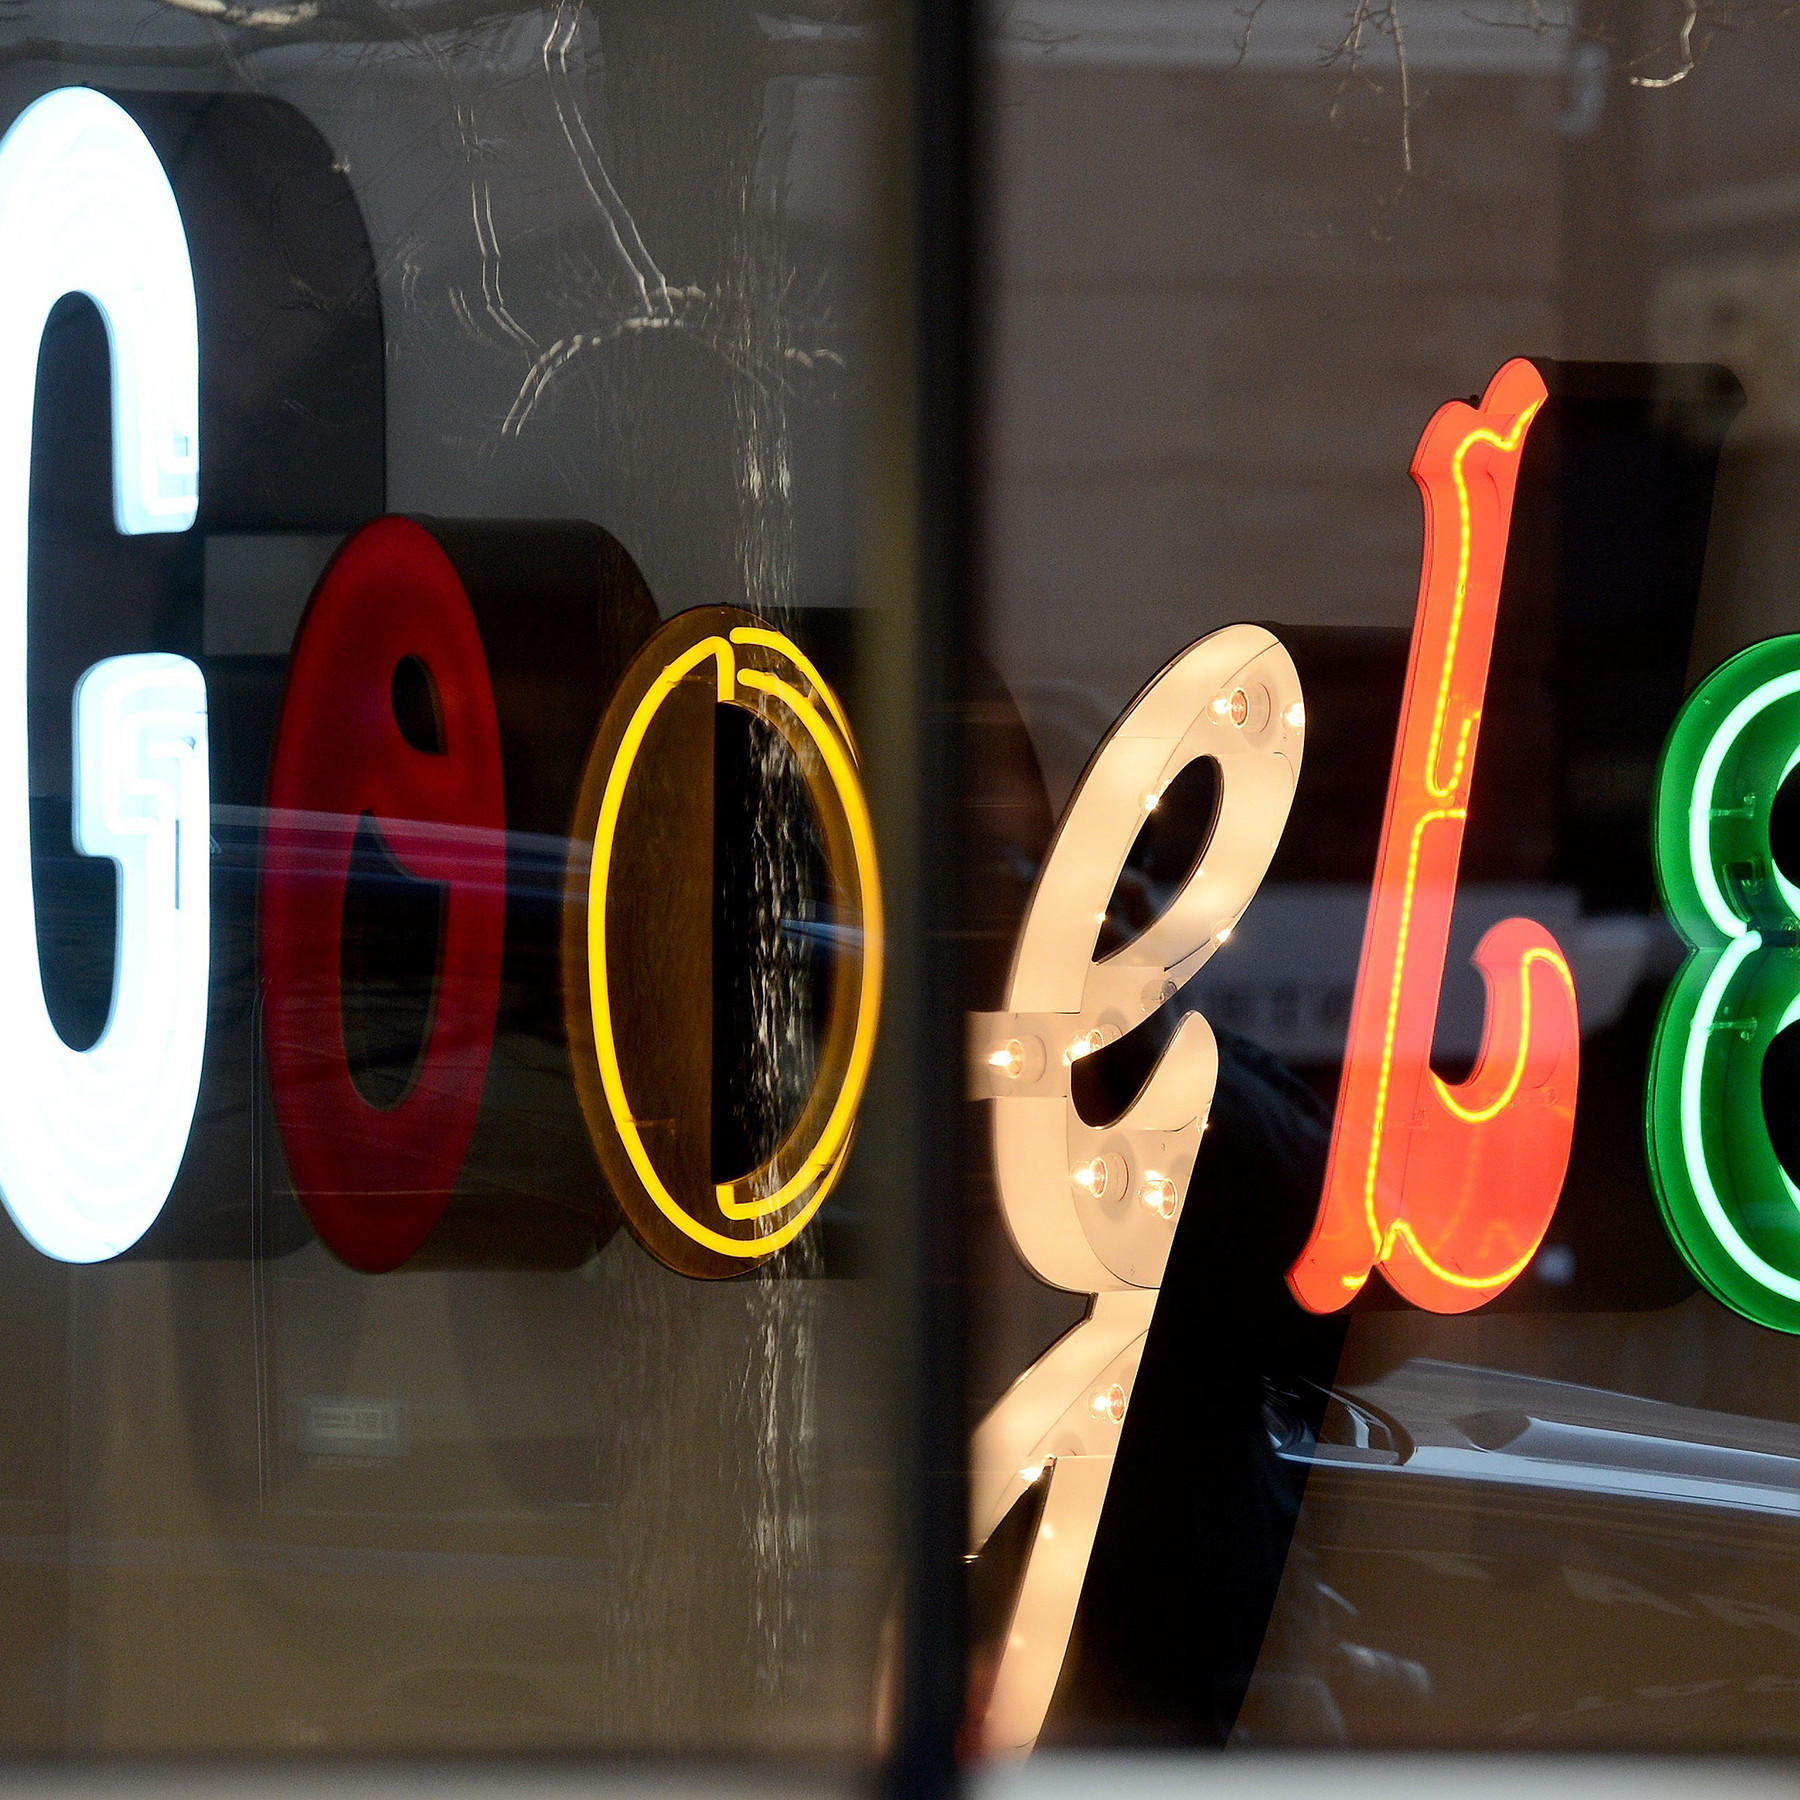 A Google logo is displayed at Google's New York offices.